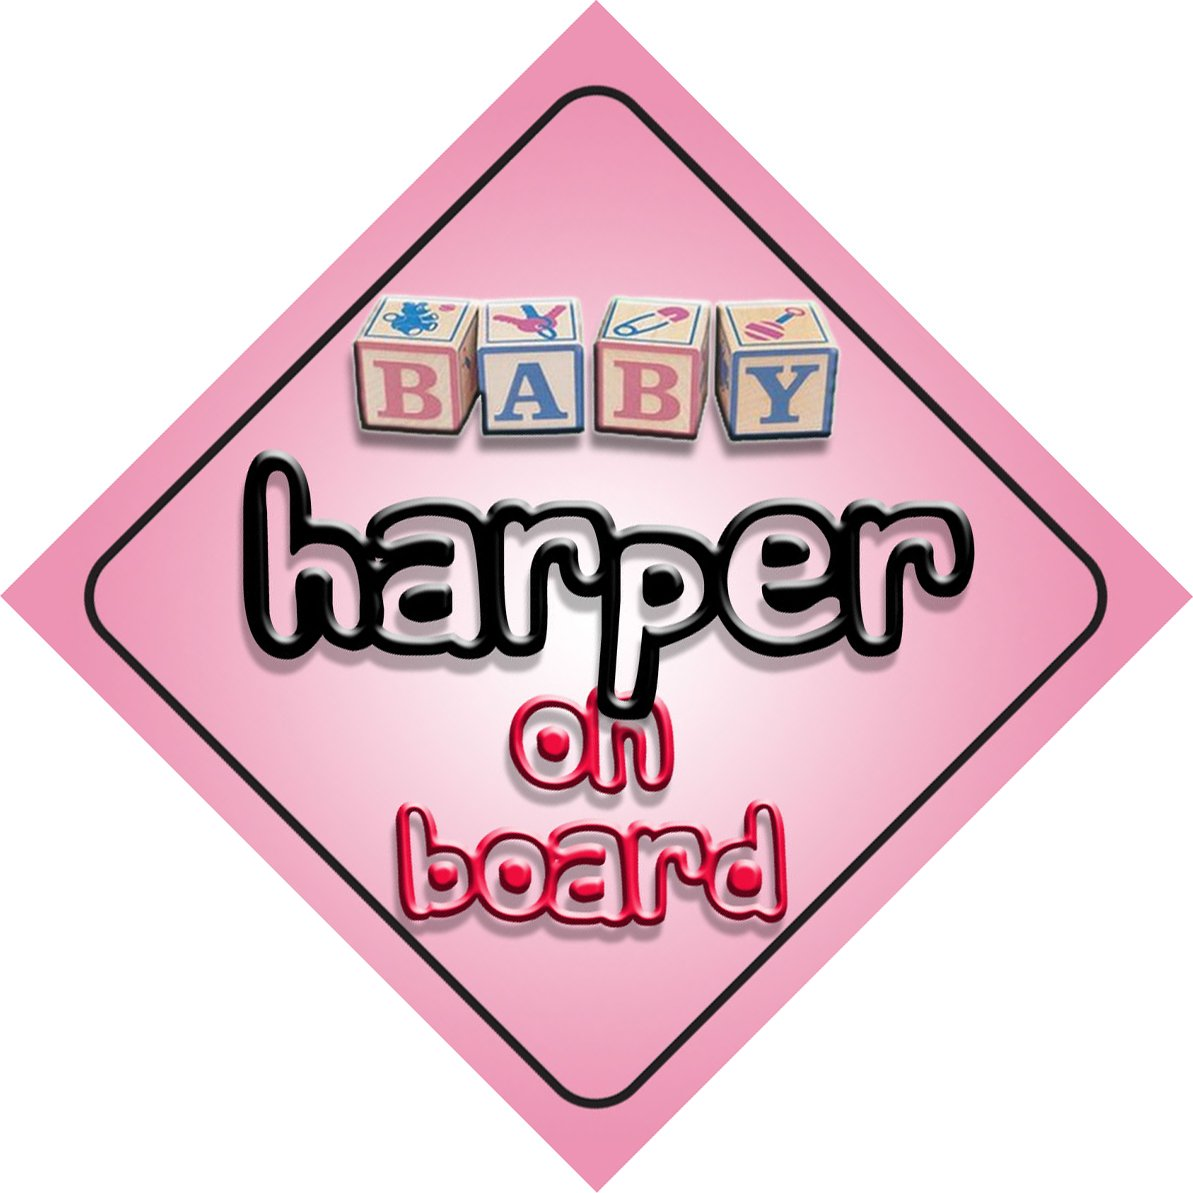 Baby Girl Harper on board novelty car sign gift/present for new child/newborn baby